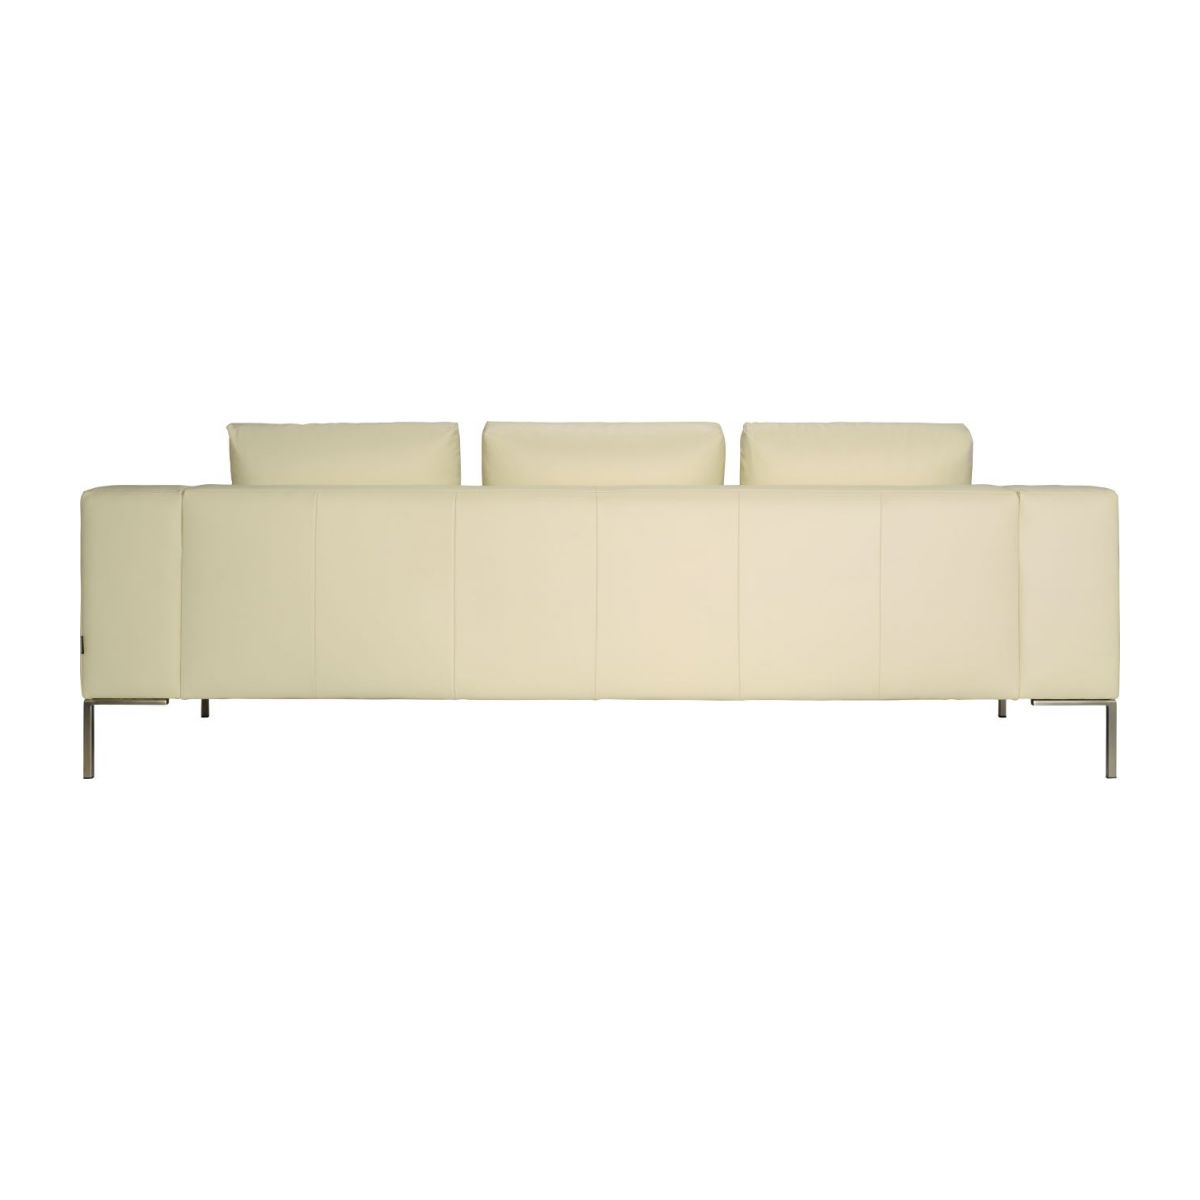 3 seater sofa in Eton veined leather, cream n°4